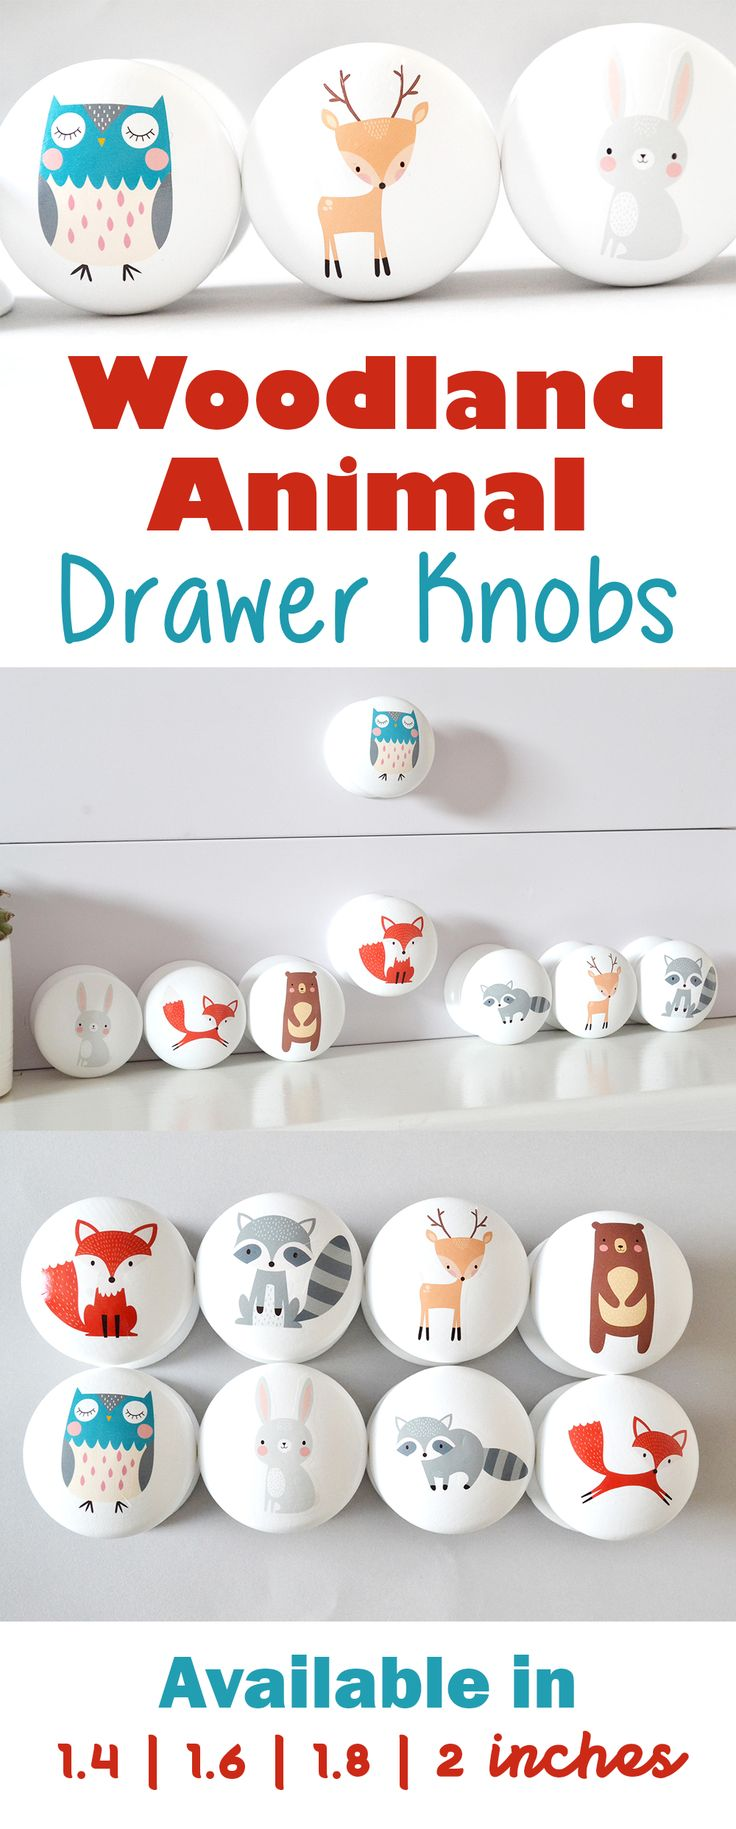 How adorable are these woodland animal drawer knobs! Really cute little handles! Perfect for the wardrobes in the nursery. Can't wait to put these in my son's nursery! #woodland #animals #nursery #etsy #ad